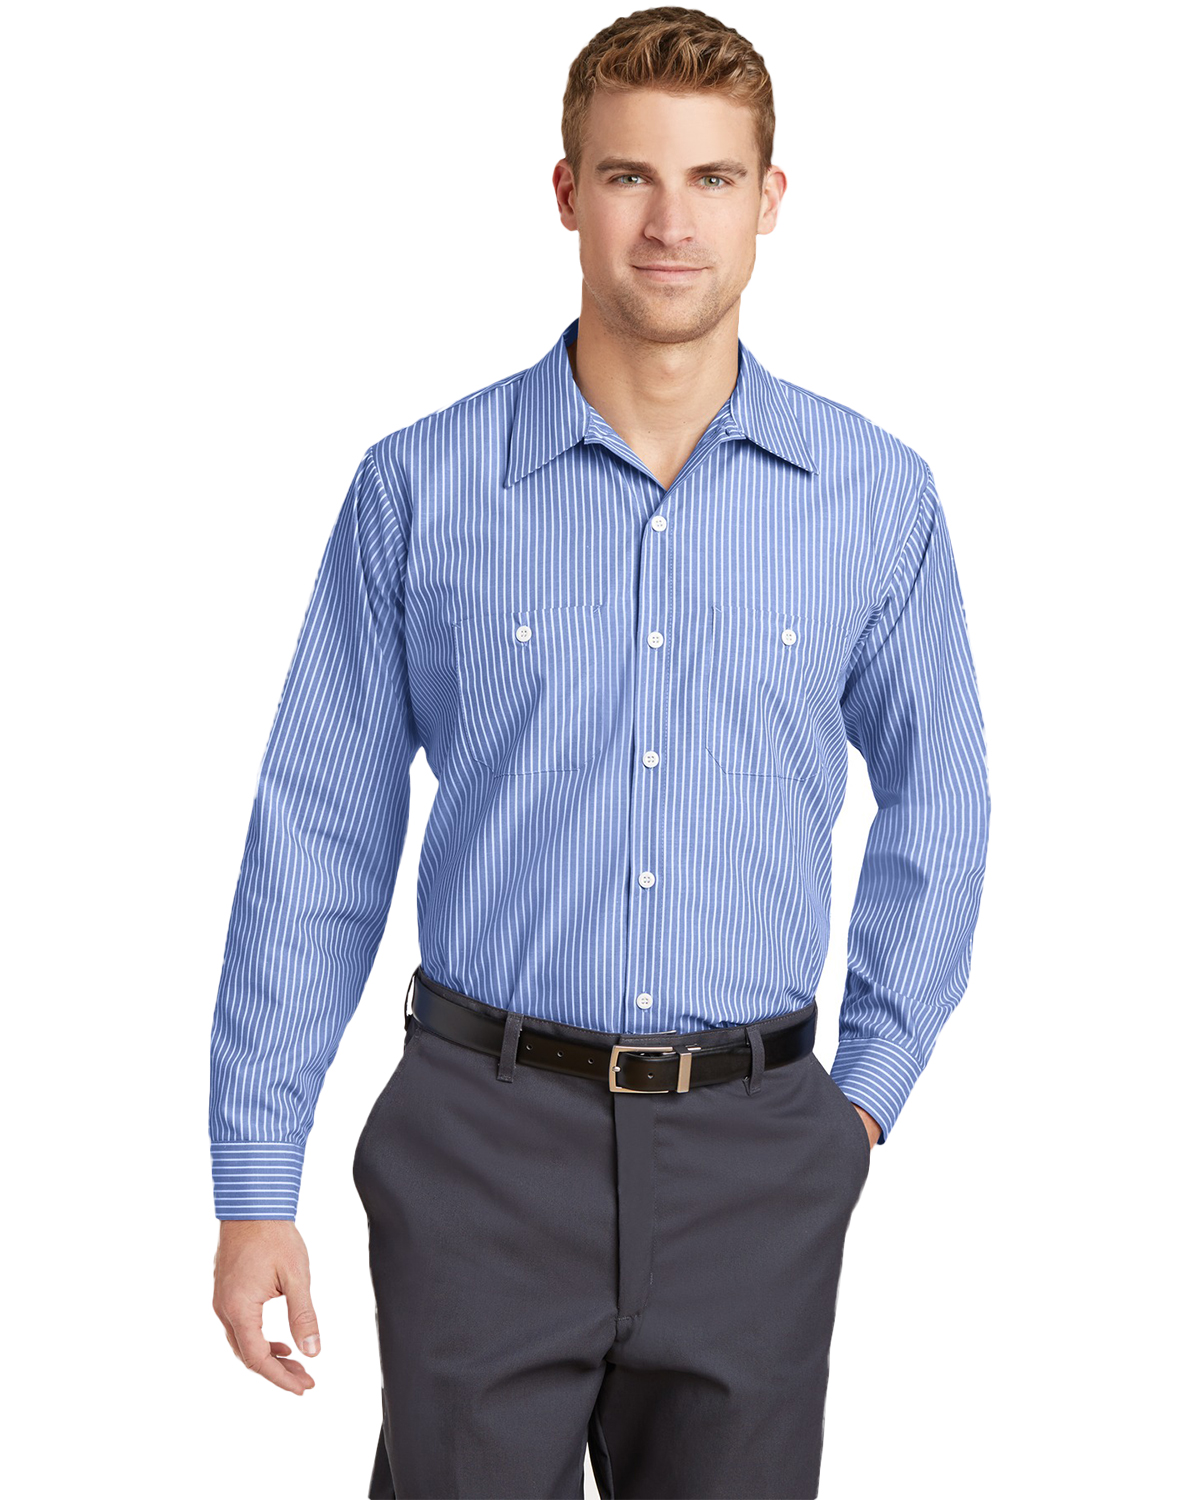 Work Shirts At Wholesale Price Wide Selection